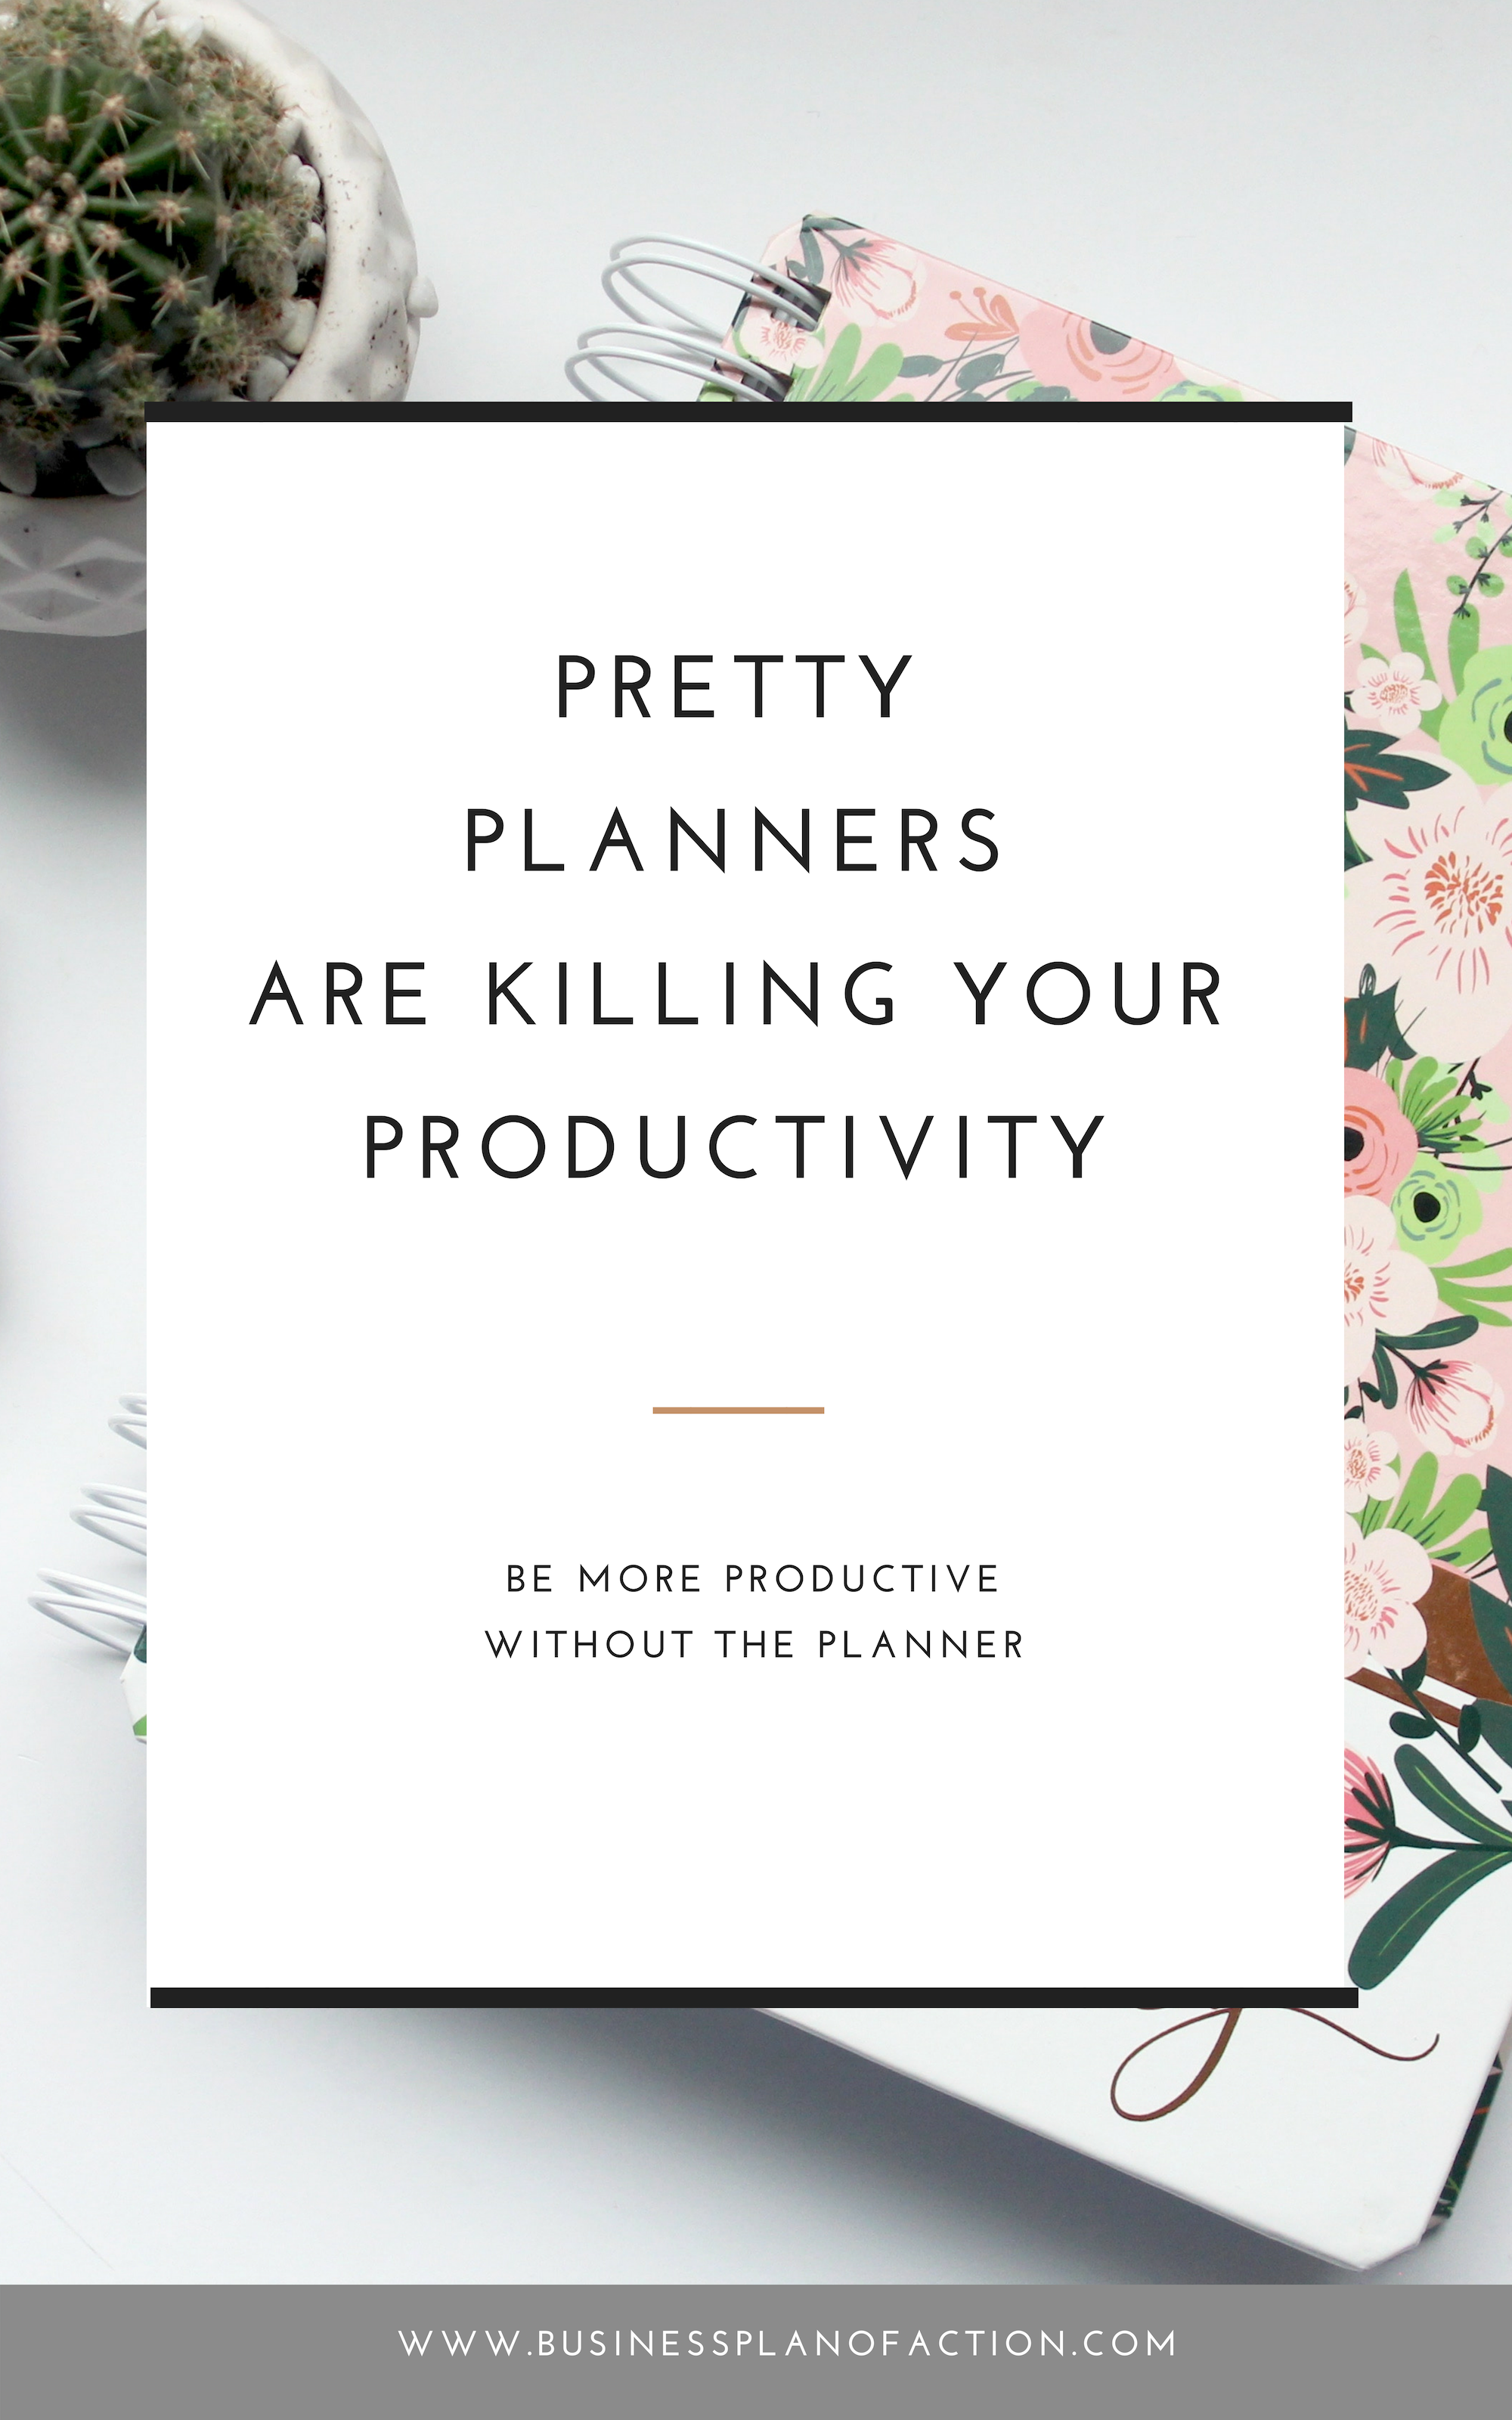 Put away the pretty planners and start getting more productive with digital tools. It's time to paper-proof your biz!